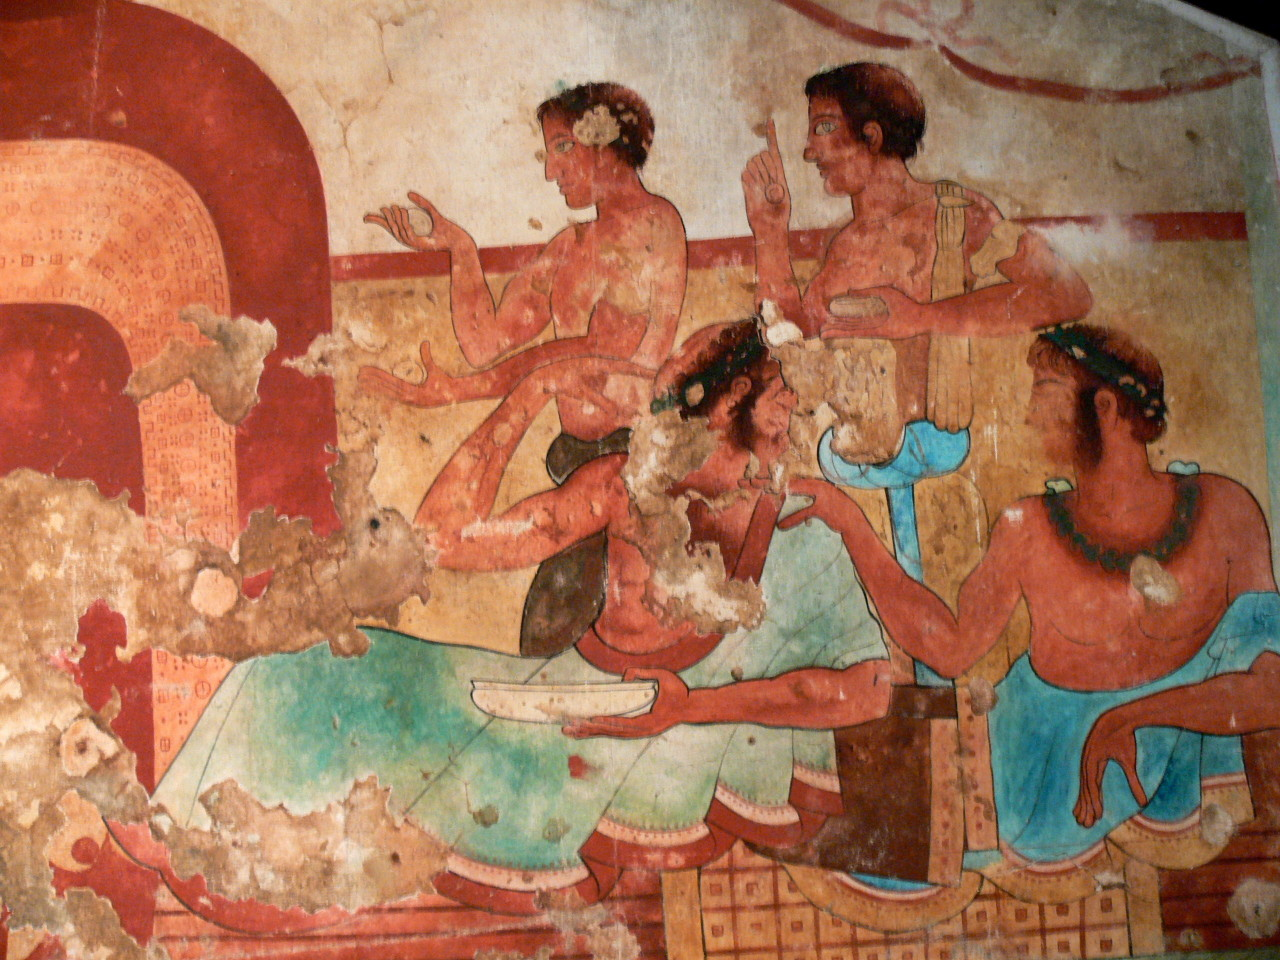 Ancient Etruscan tomb fresco showing a symposium scene. Courtesy & currently located at the Ny Carlsberg Glyptotek, Denmark. Photo taken by Wolfgang Sauber